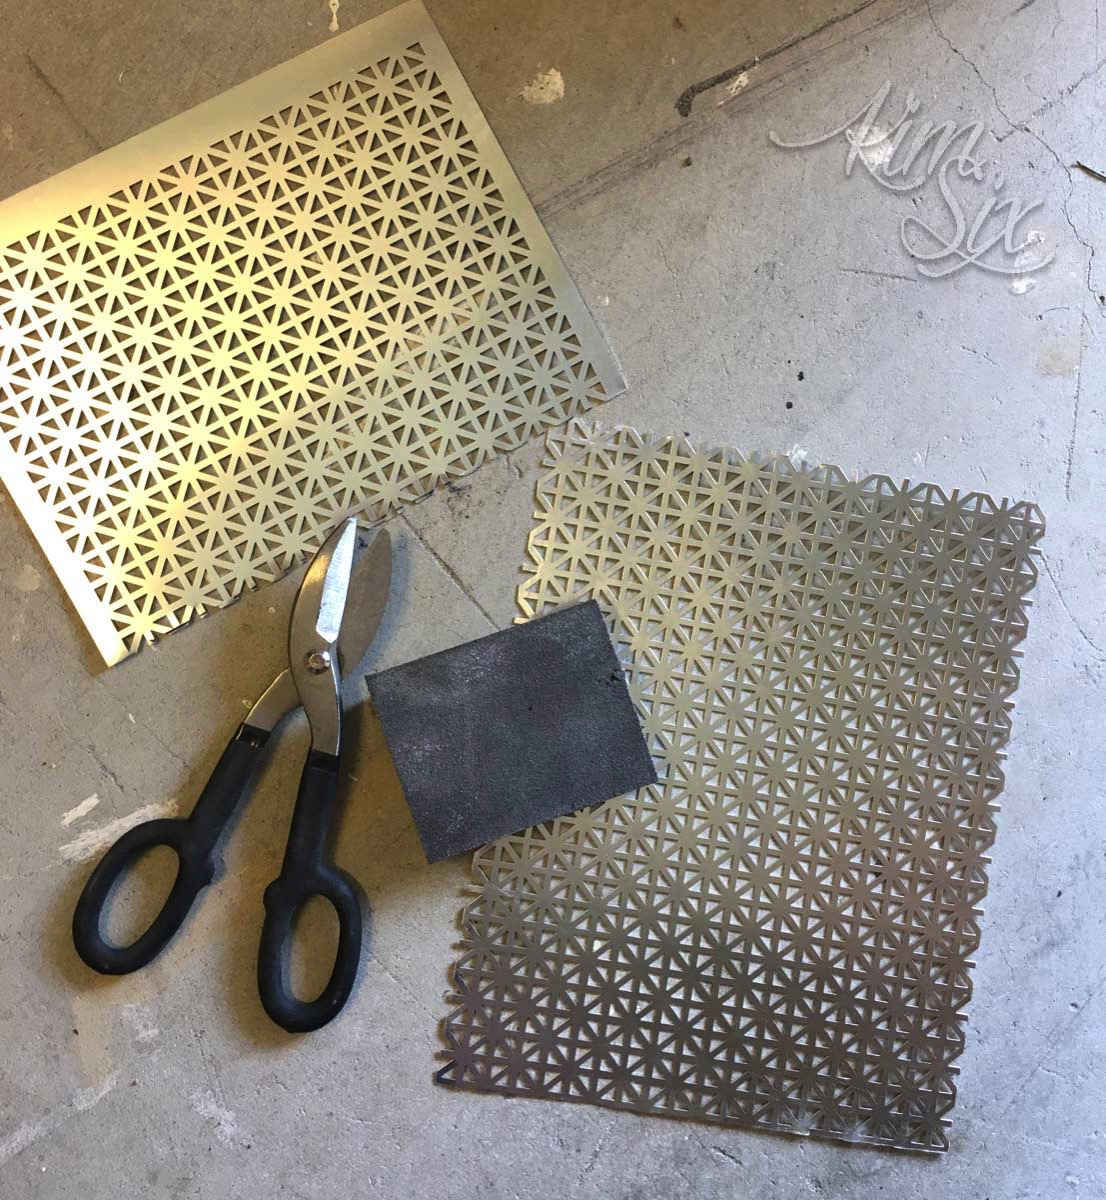 Cutting Performated Decorative Metal Sheets For Photo